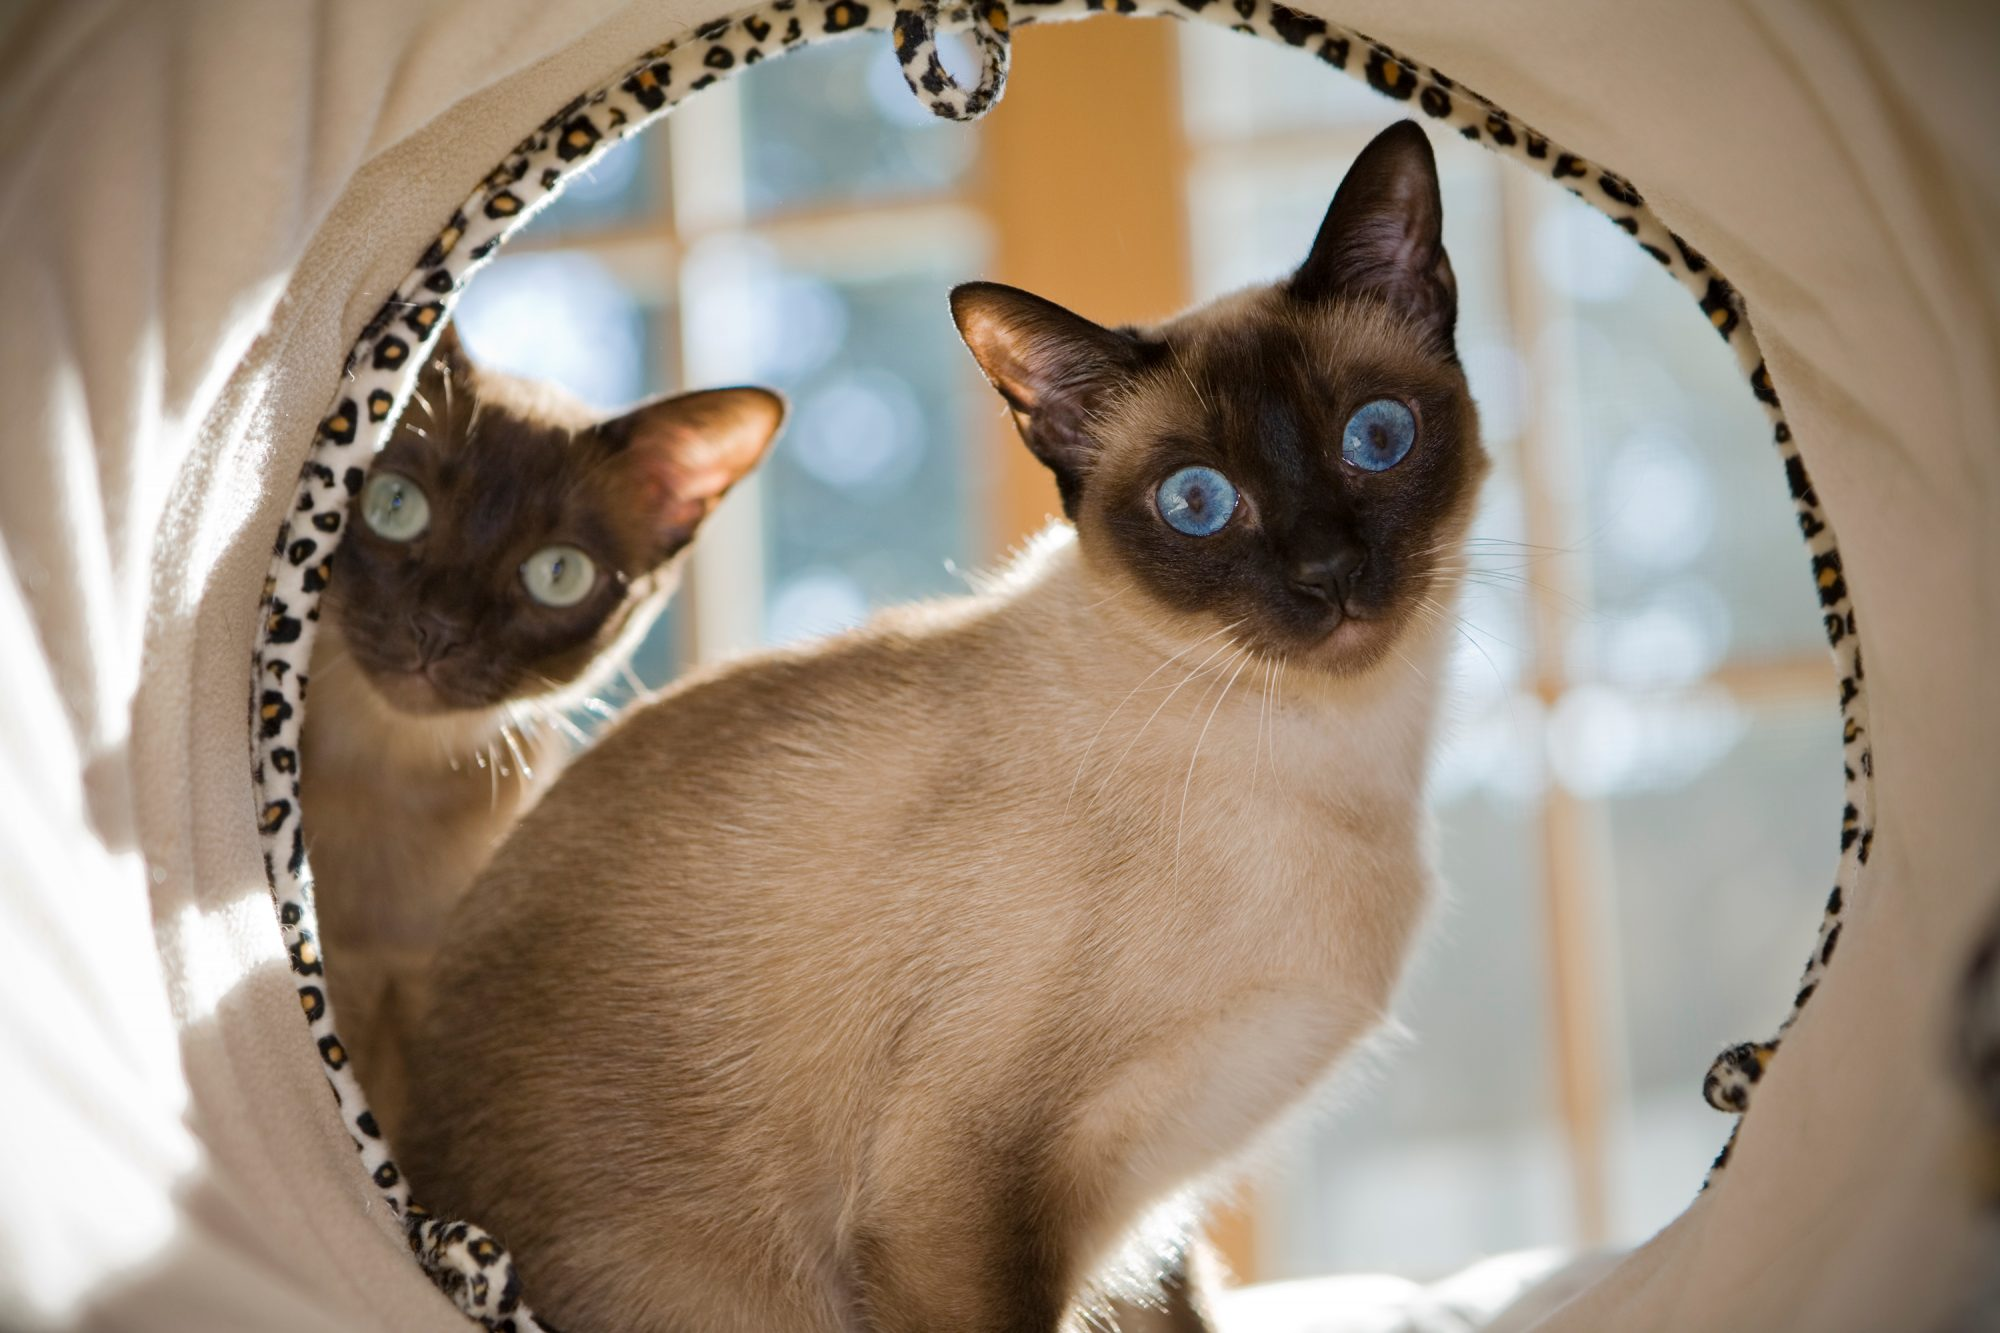 Tonkinese Cats in a Laundry Barrel